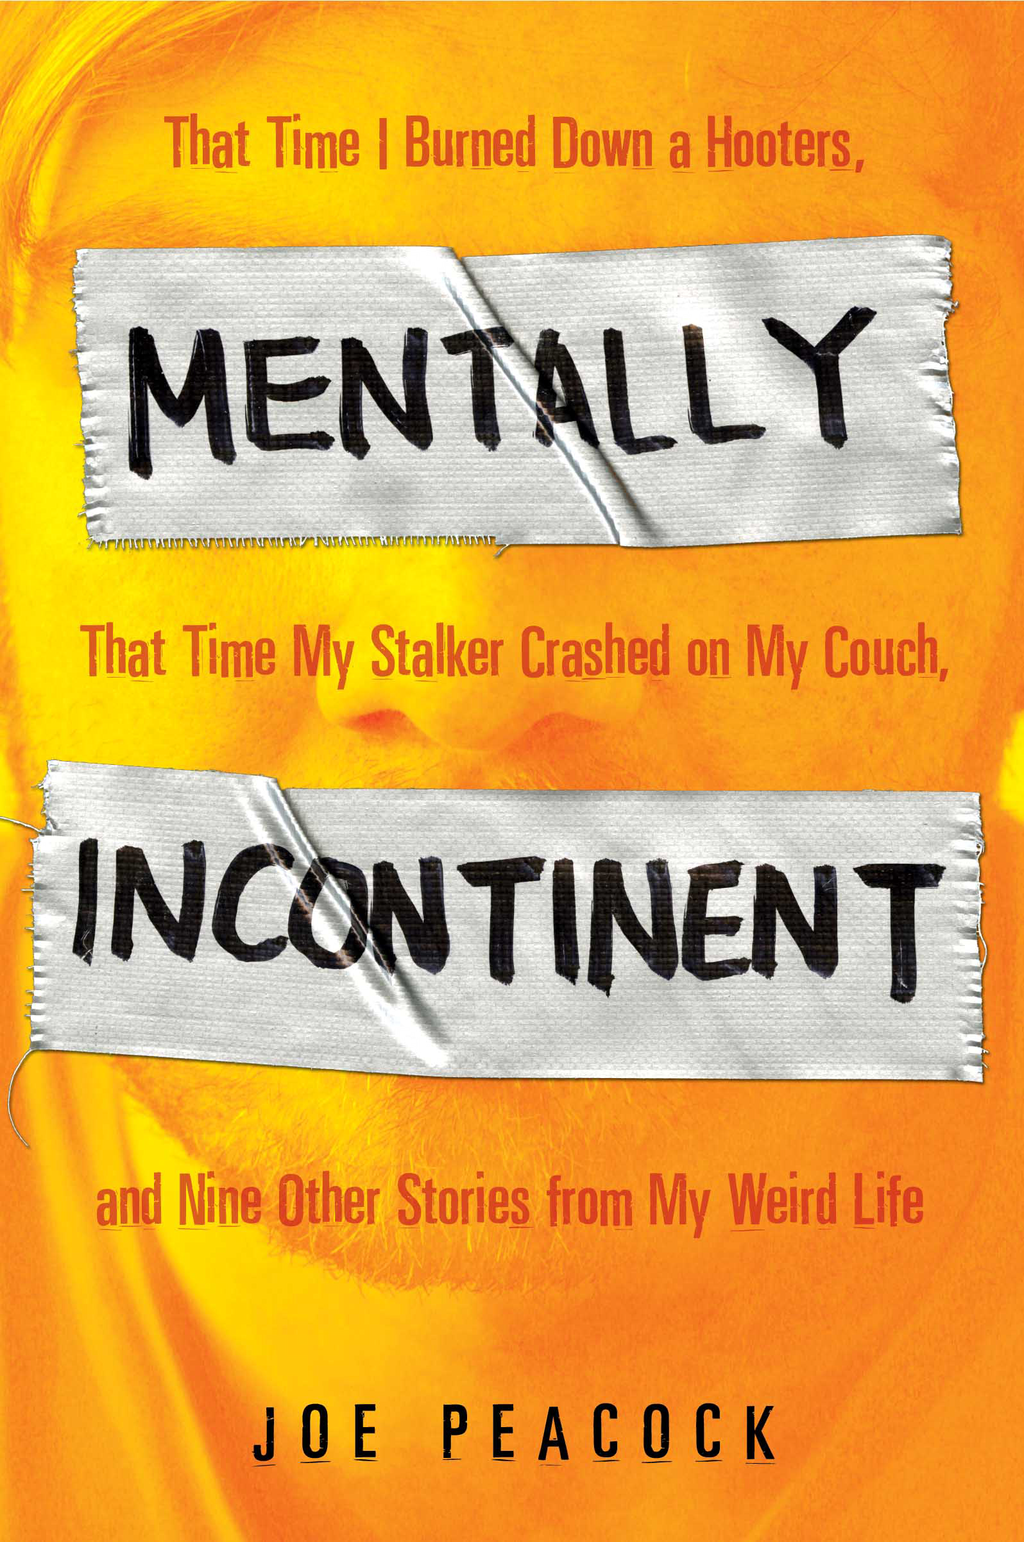 Mentally Incontinent By: Joe Peacock